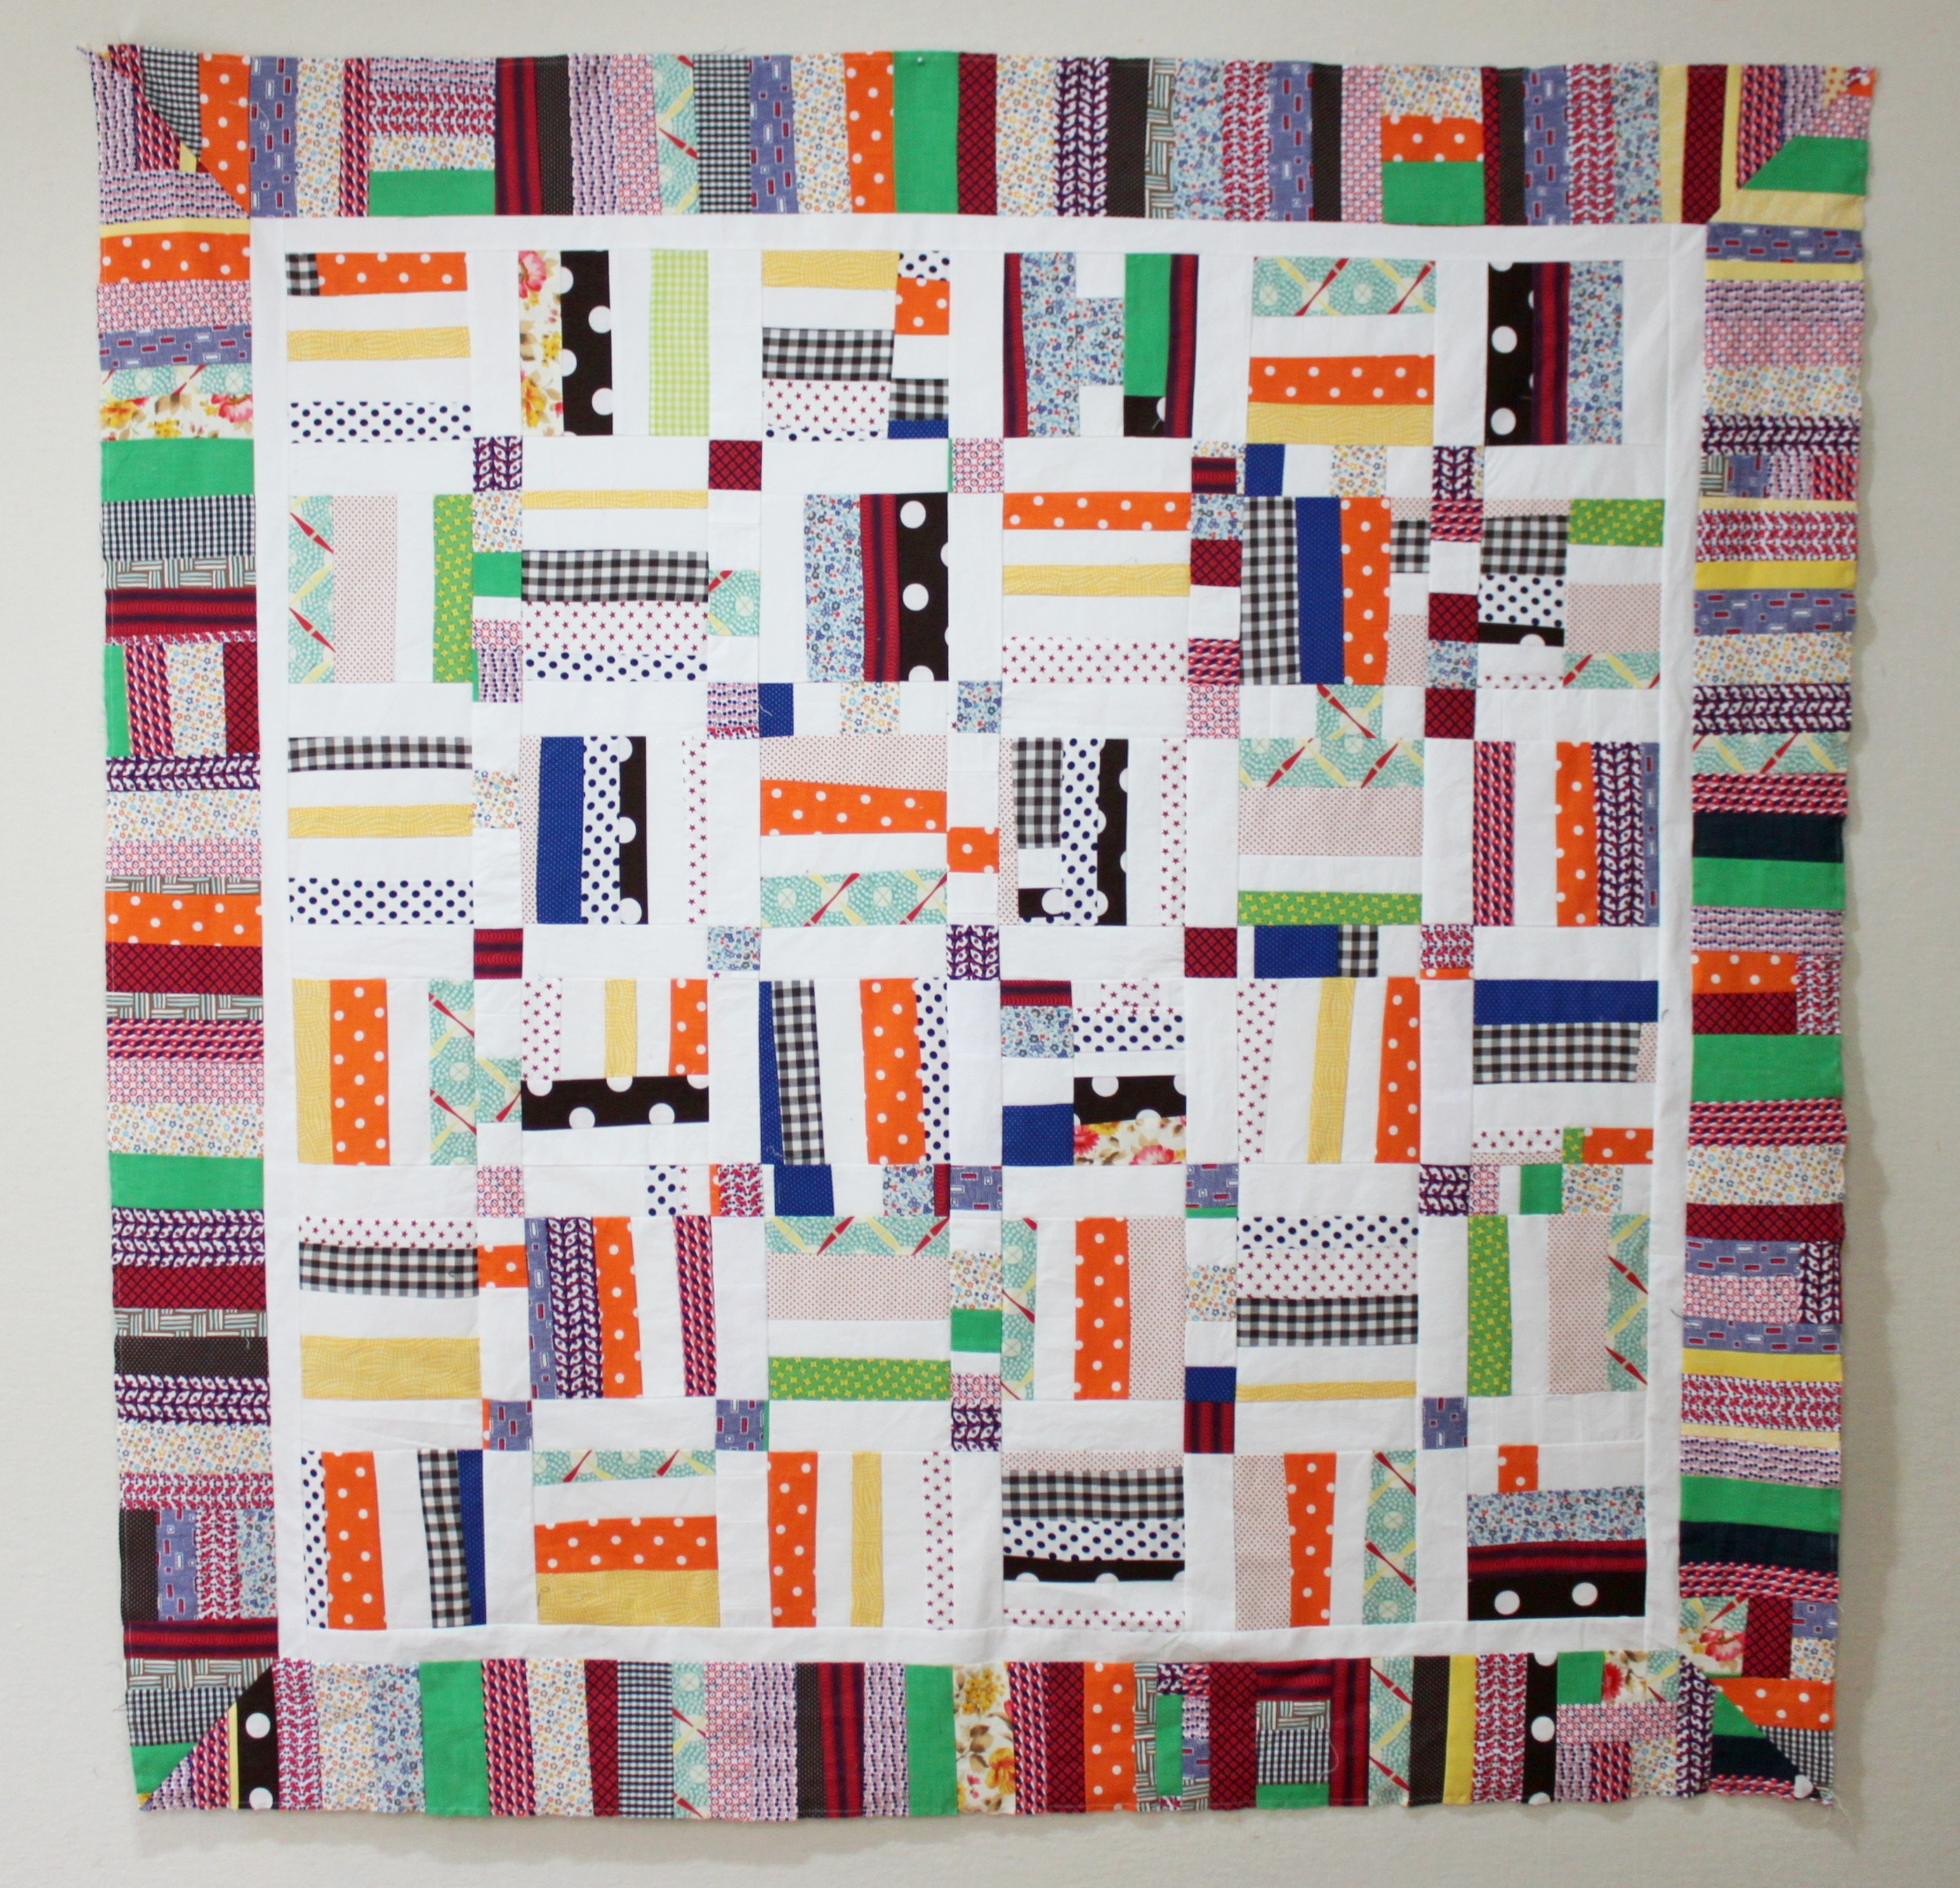 A baby quilt collaboration